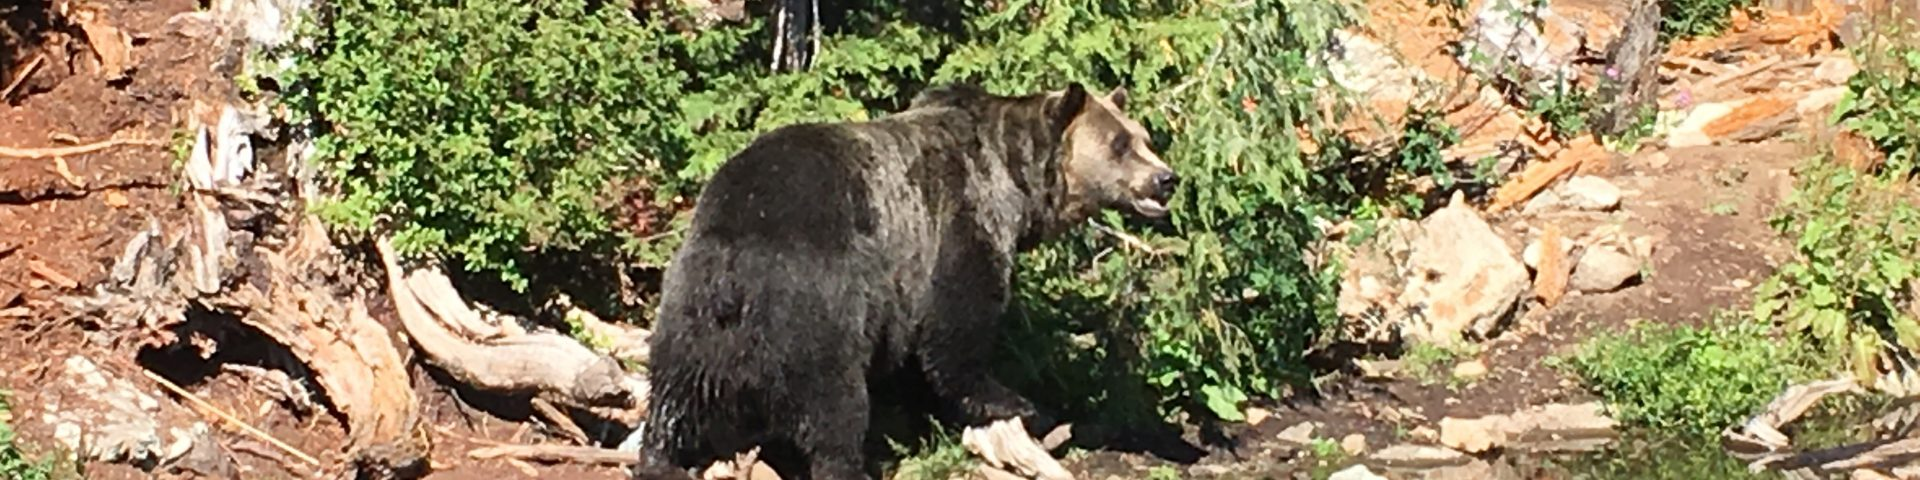 Bears on Grouse Mountain, Vancouver